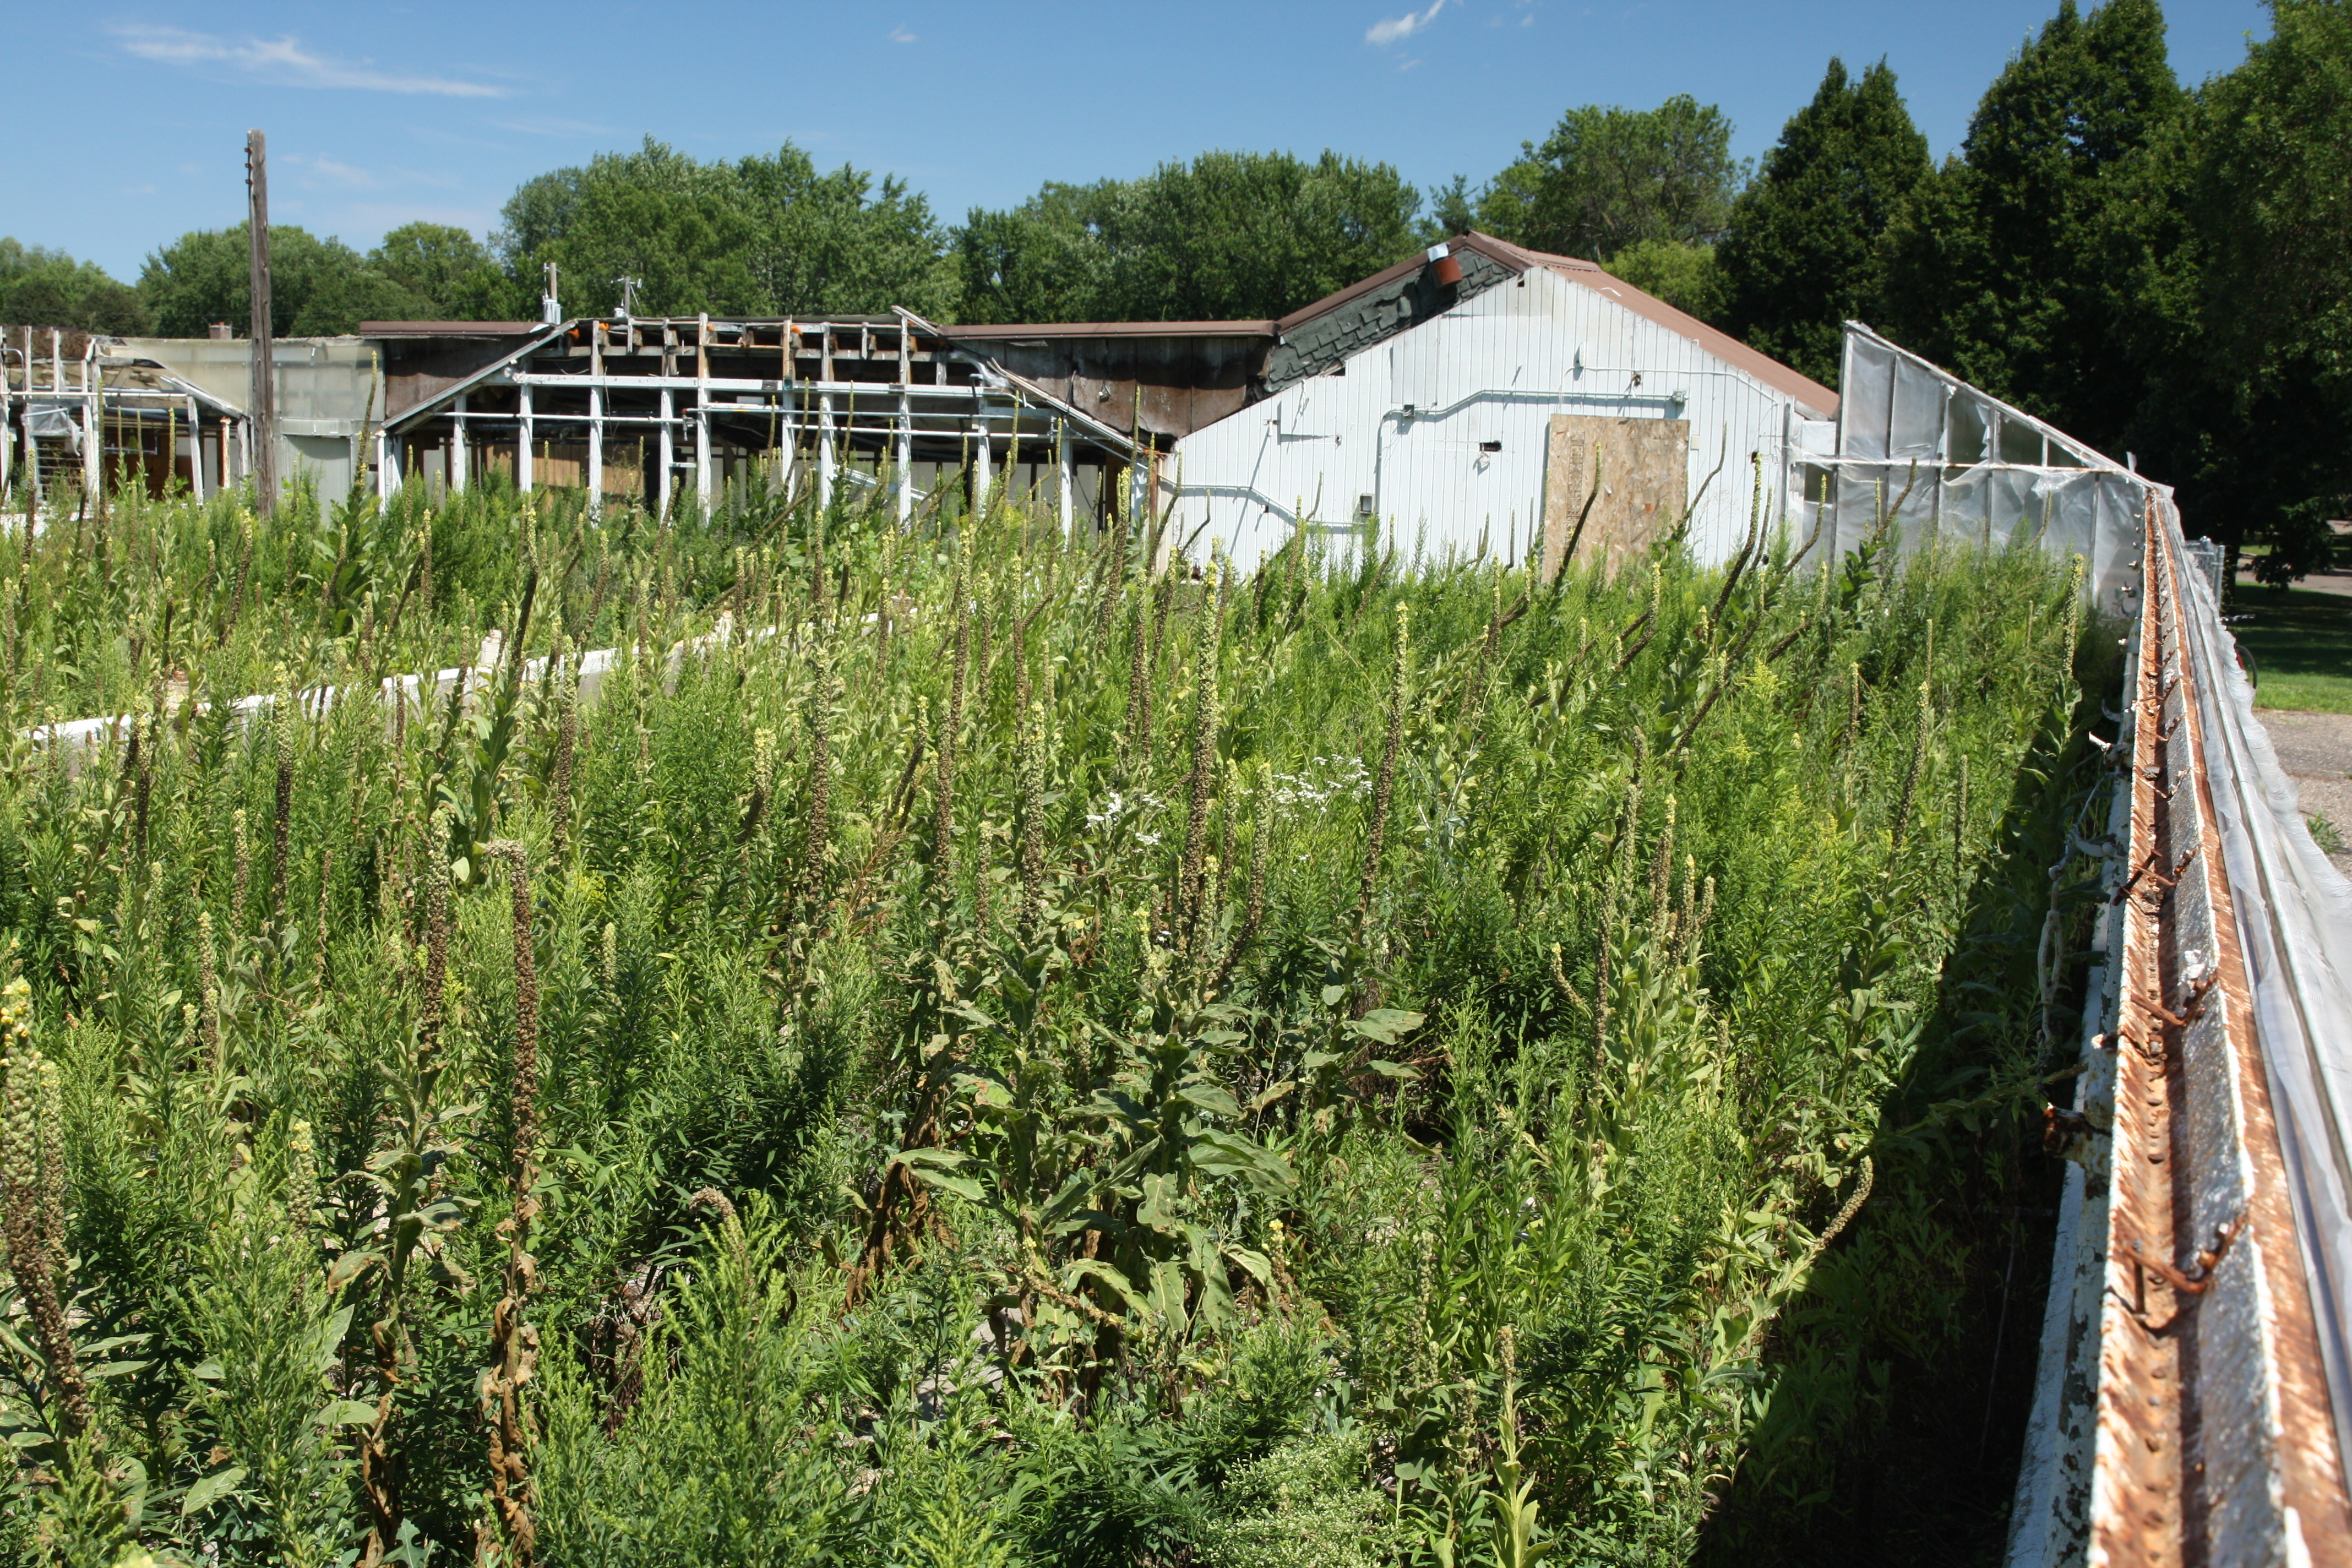 The remains of one greenhouse and support structures. It is remarkable how quickly nature takes over a deserted place.